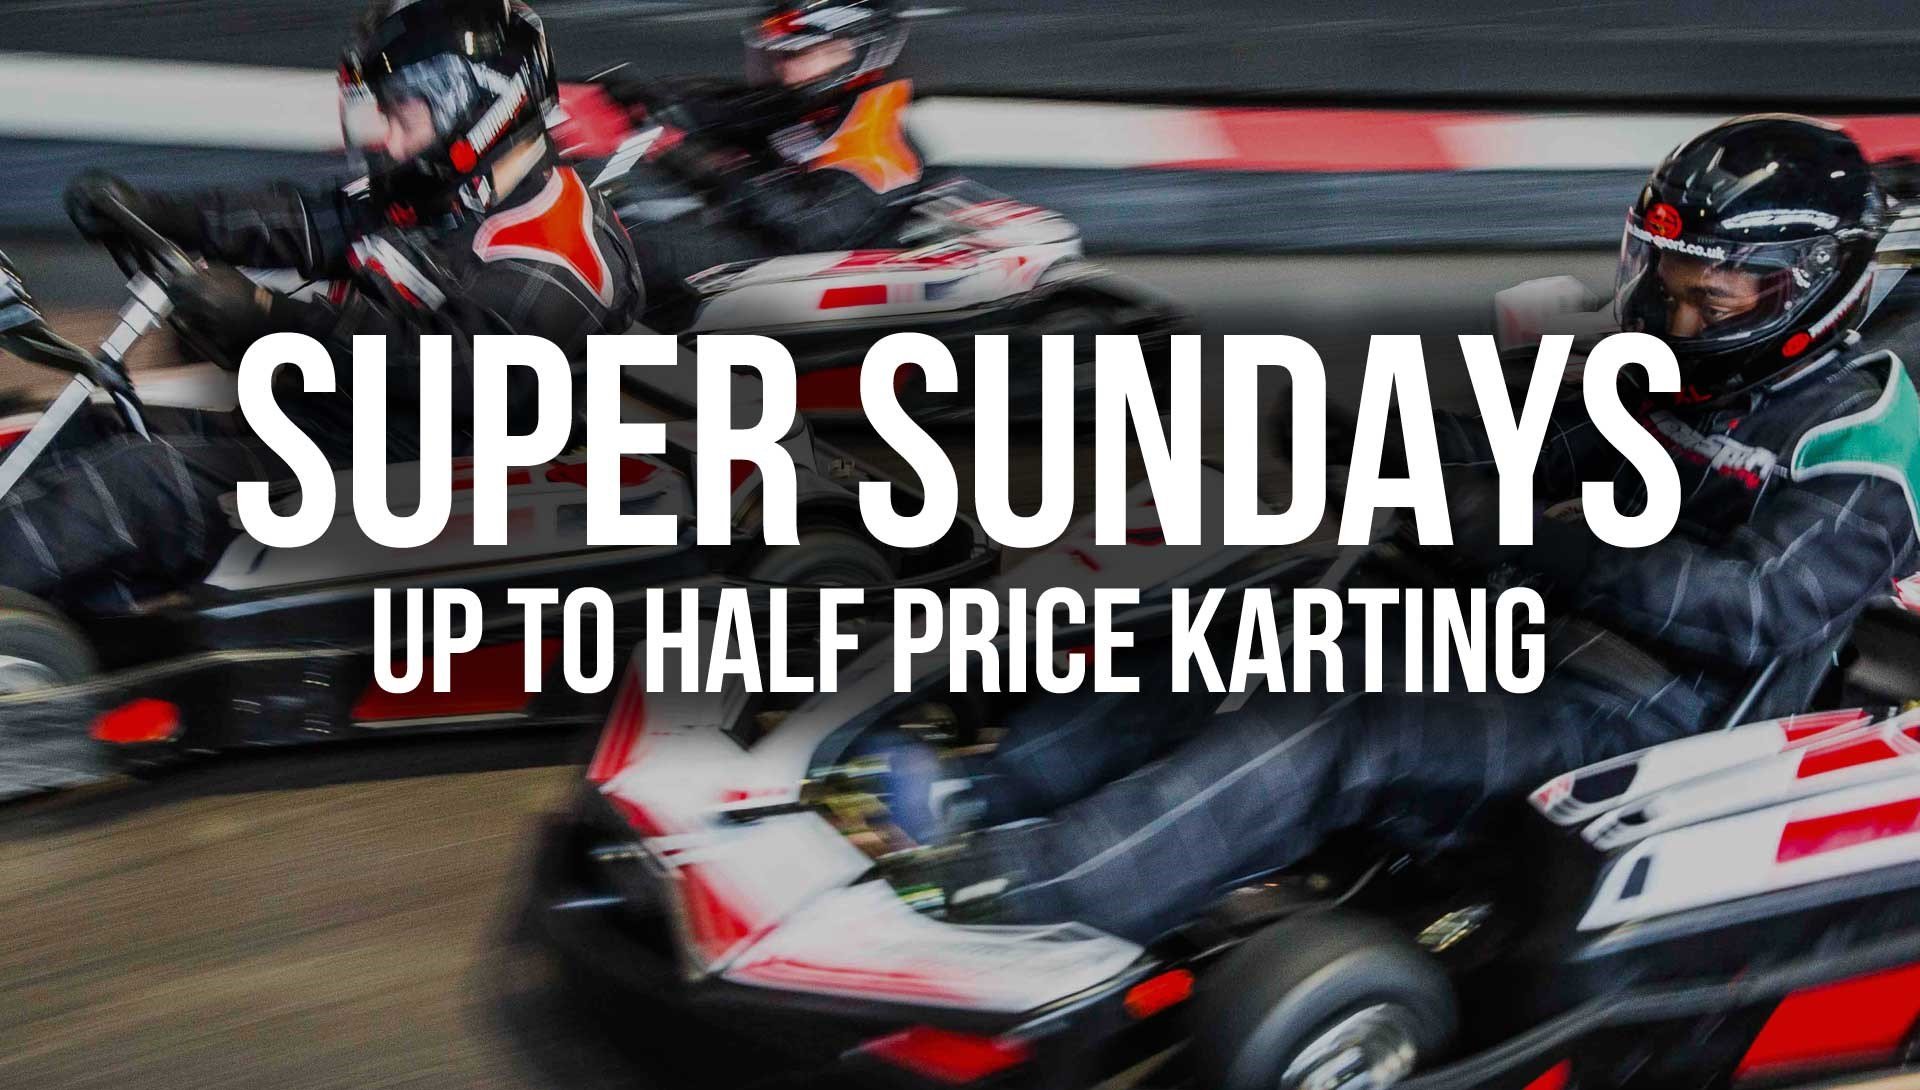 School holidays Offers and Events - SUPER SUNDAYS